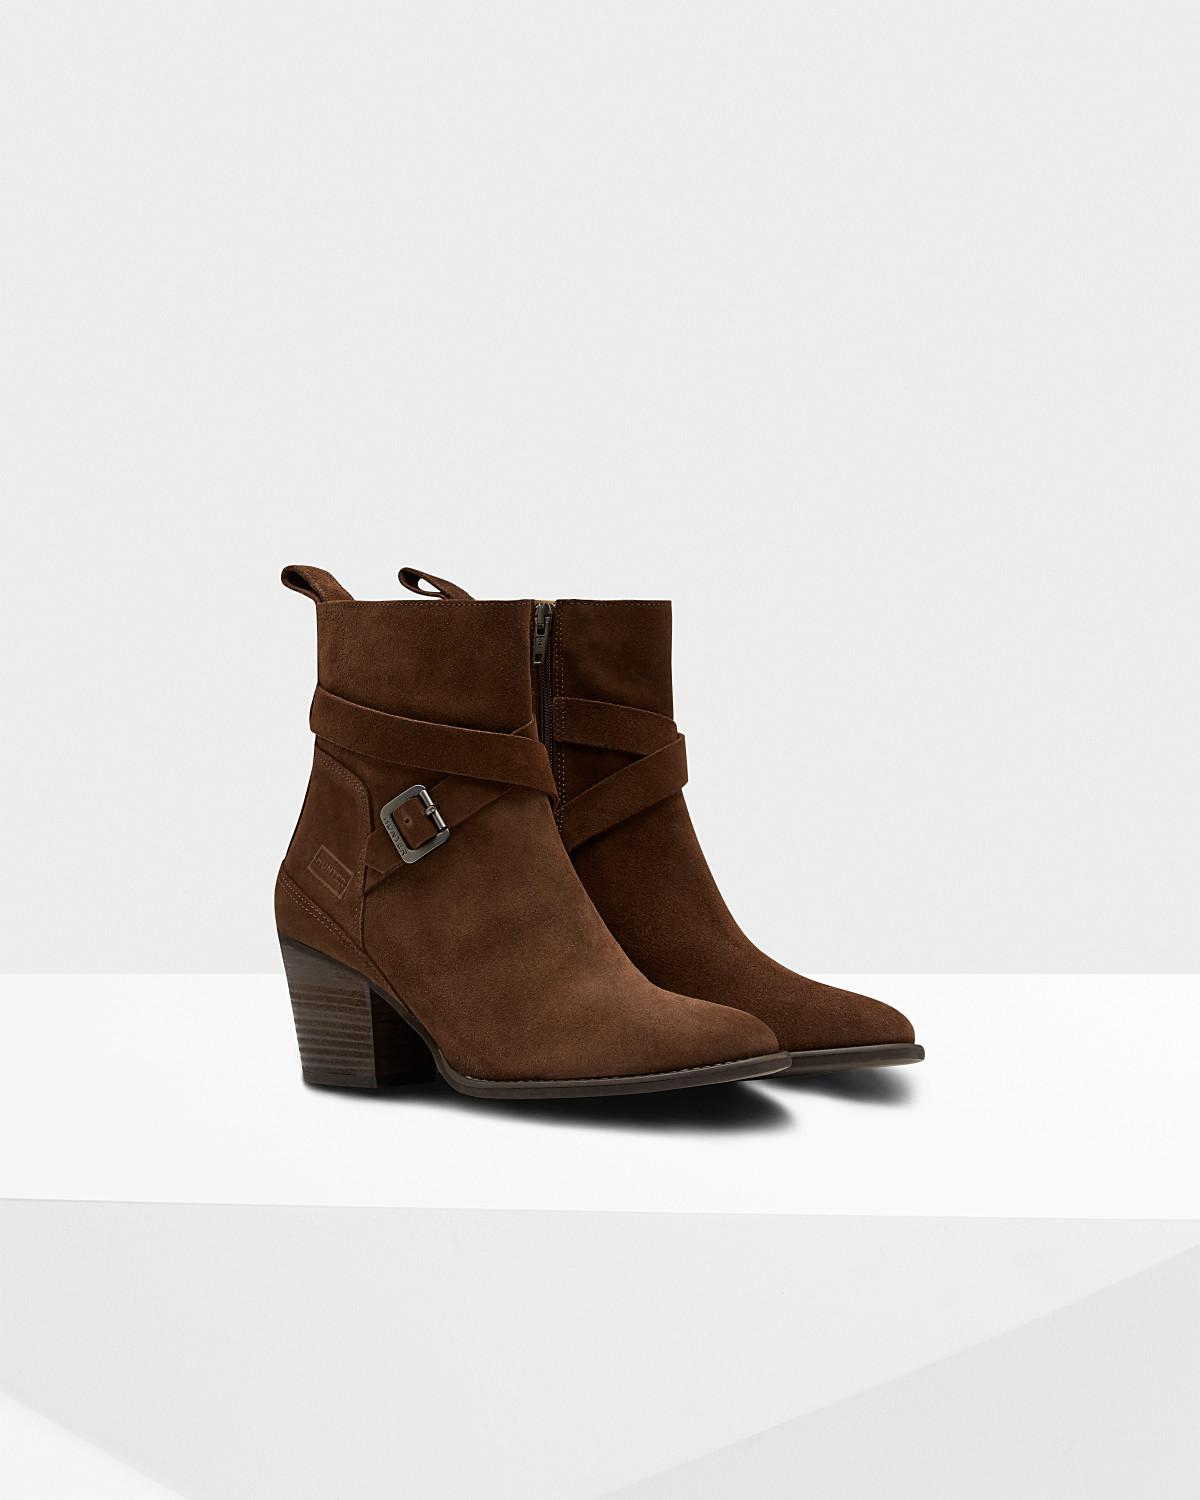 HUNTER Original Refined Suede Ankle Boots in Chocolate (Brown)